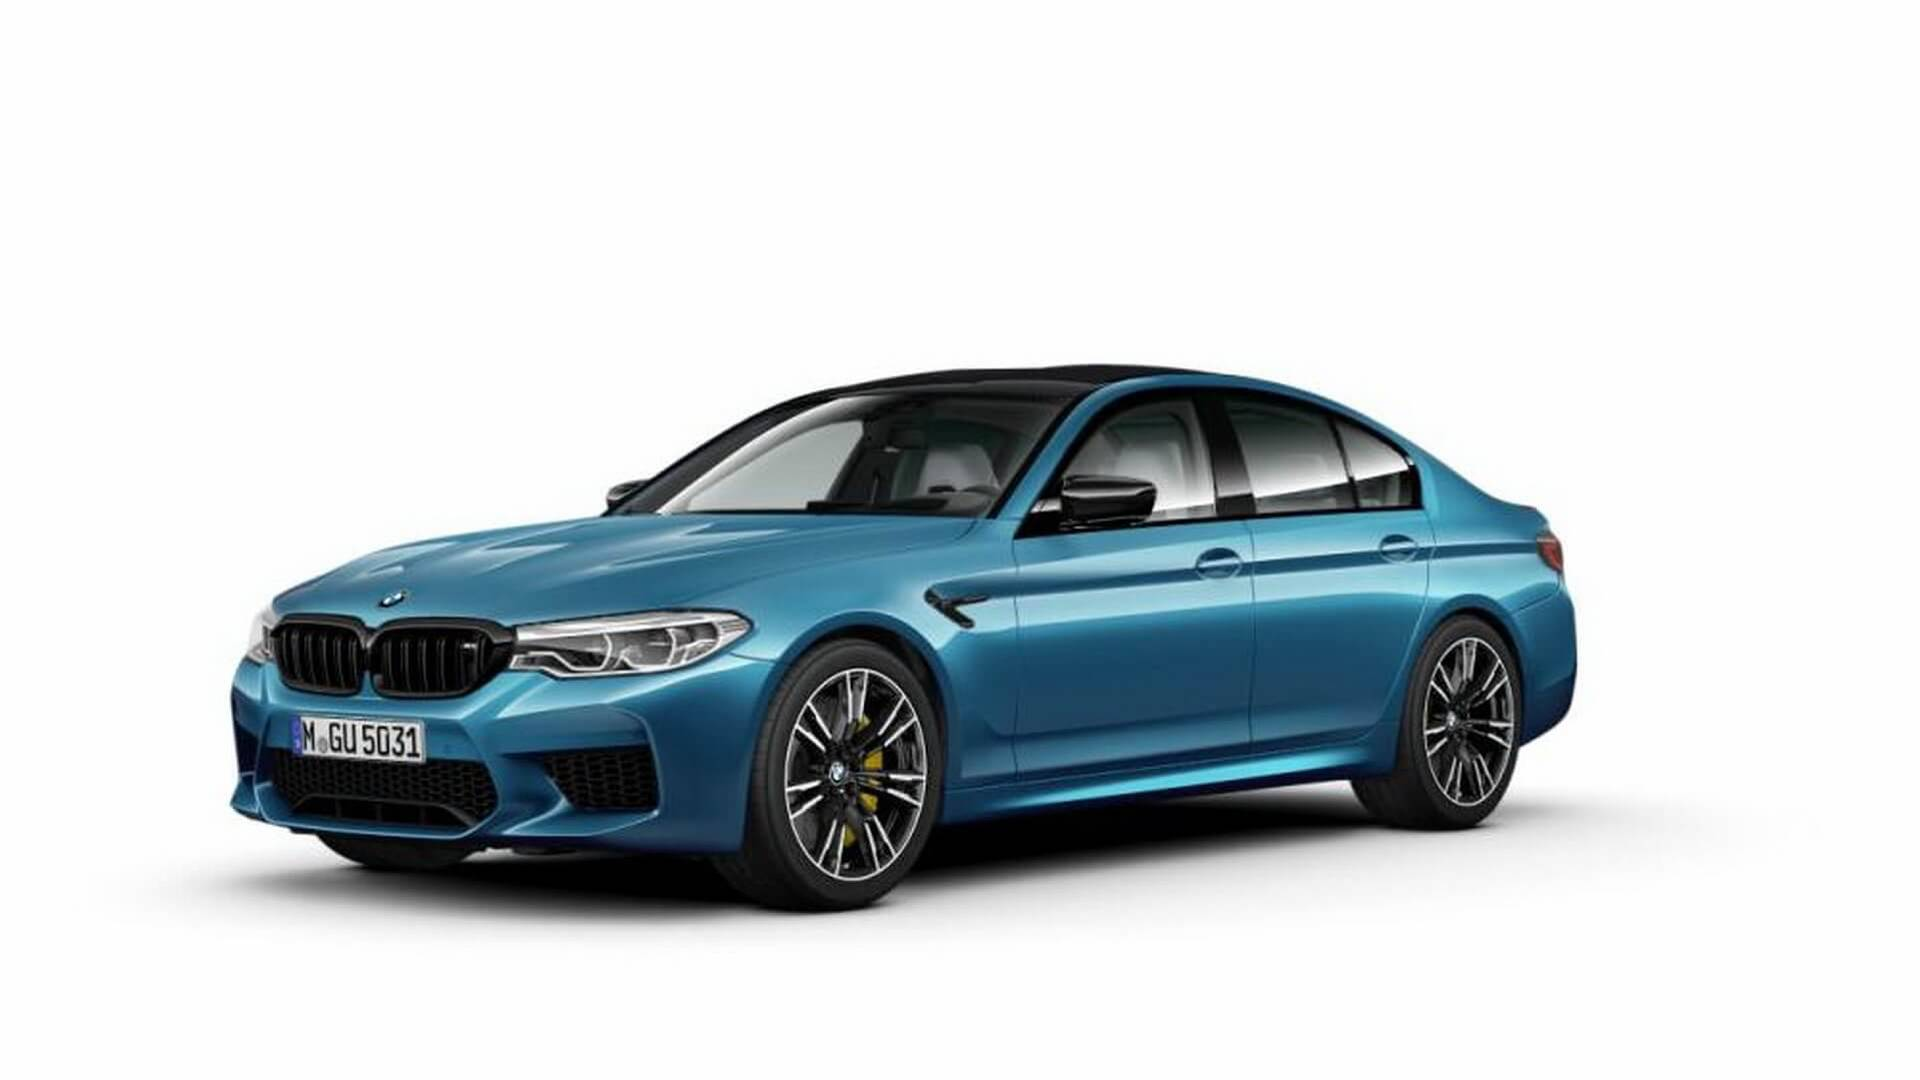 New hardcore 617bhp BMW M5 variant leaked online